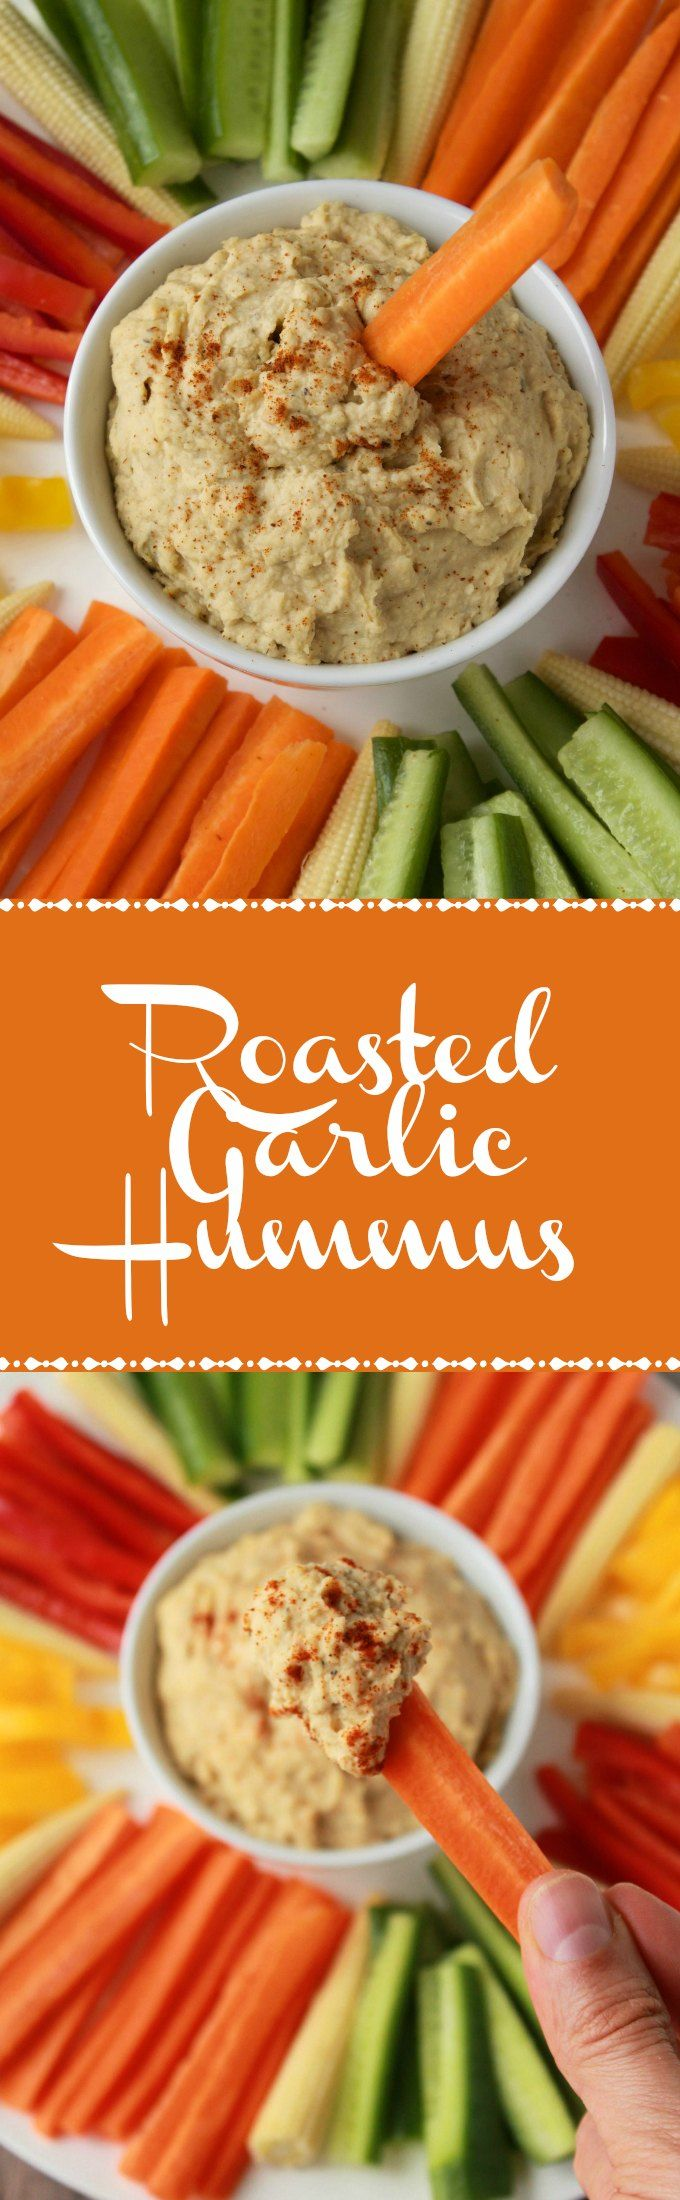 Creamy and Delicious Roasted Garlic Hummus. Vegan and Gluten-Free. Ideal as an appetizer or dip! Vegan | Gluten-Free | Vegan Food | Recipes